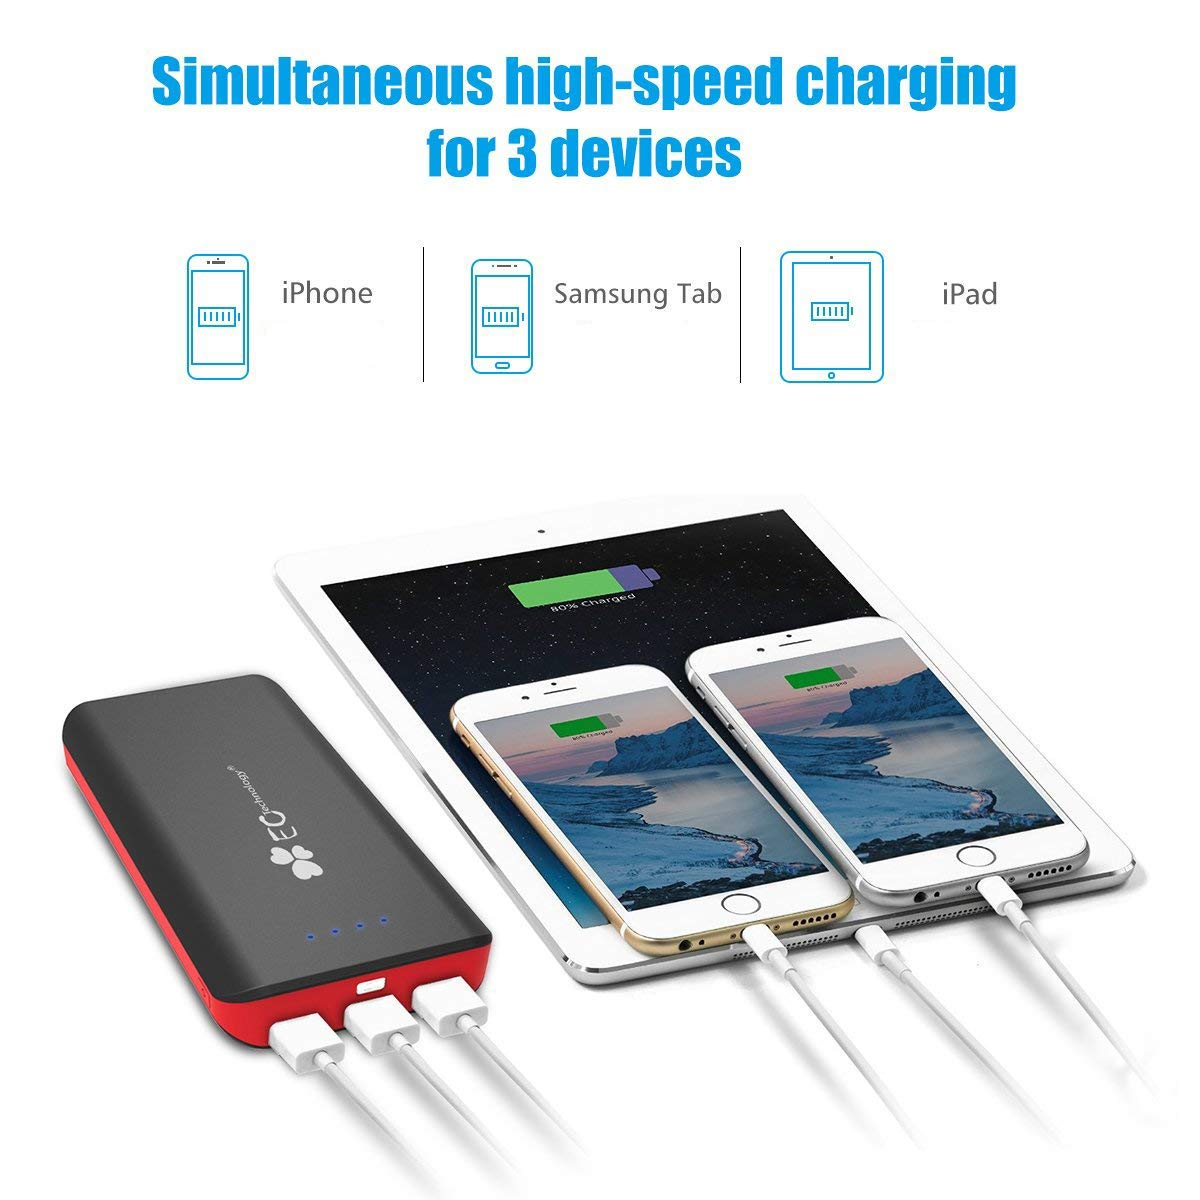 EC Technology 26800mAh Power Bank Ultra High Capacity External Battery 3 USB Output and Dual Input External Battery Pack With AUTO IC Portable Charger for iPhone, iPad, Samsung, Nexus, HTC and More - Black & Red